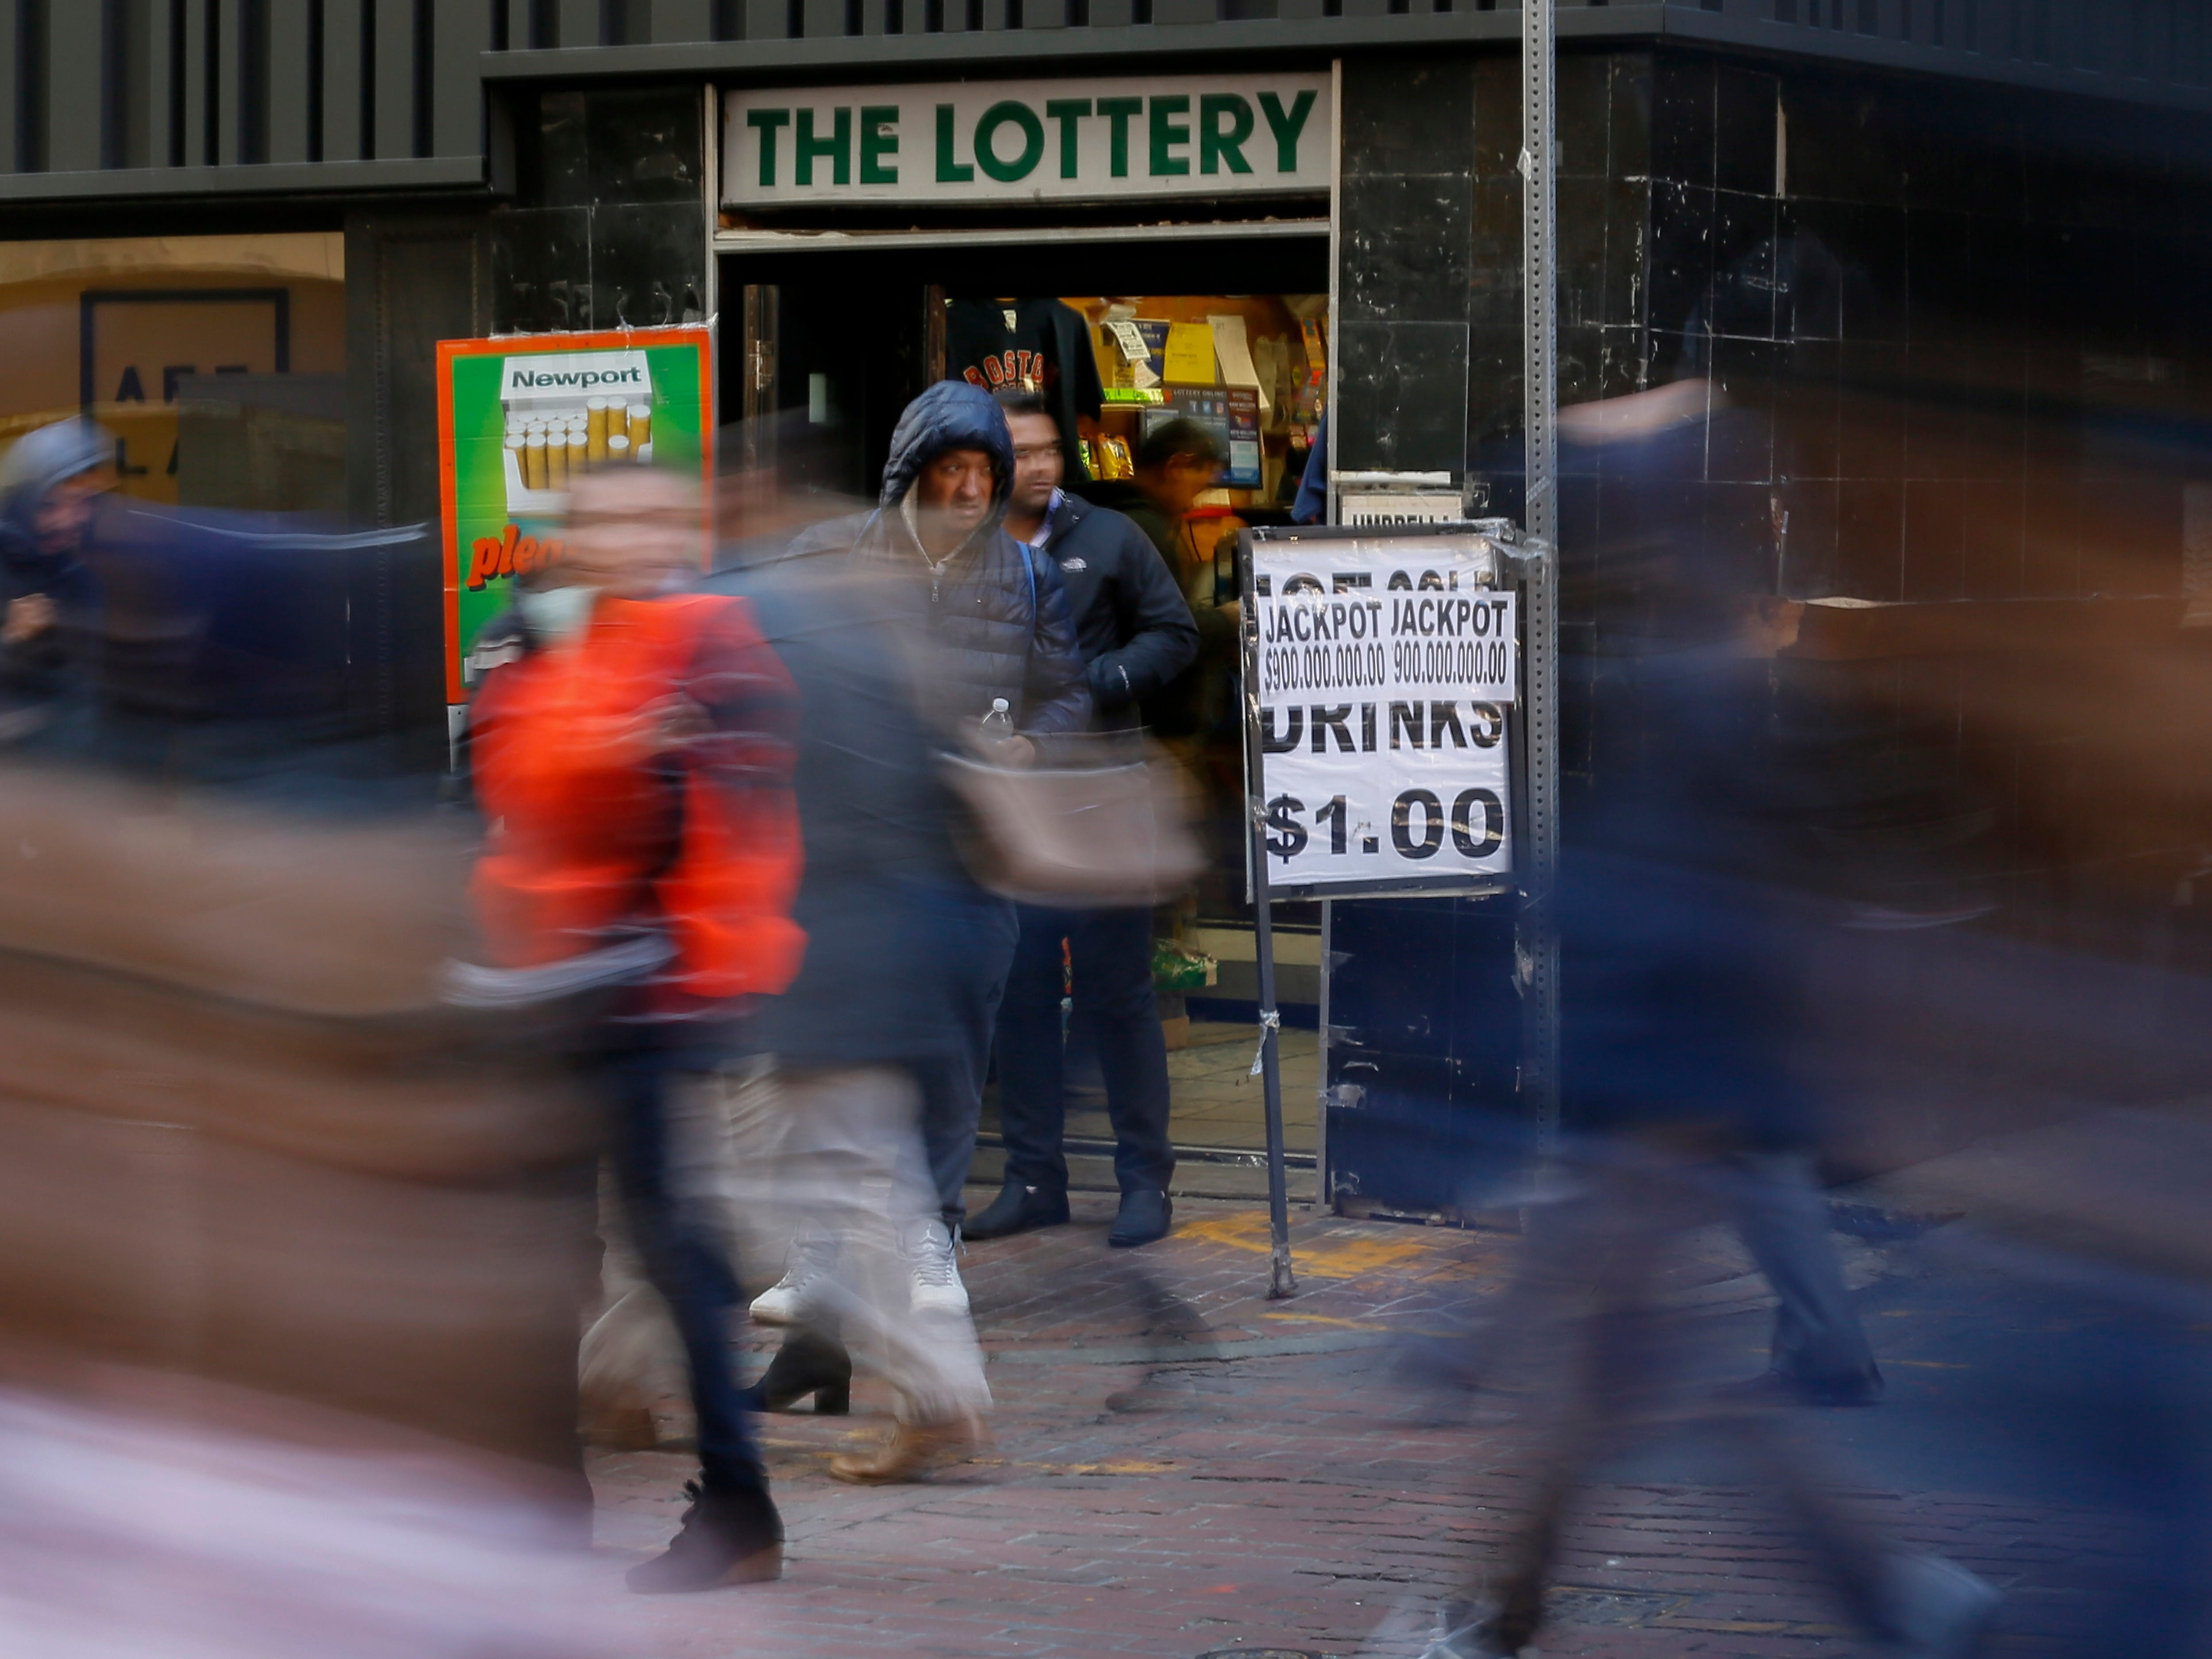 People walk past a lottery sales booth in downtown Boston, Oct. 18, 2018.